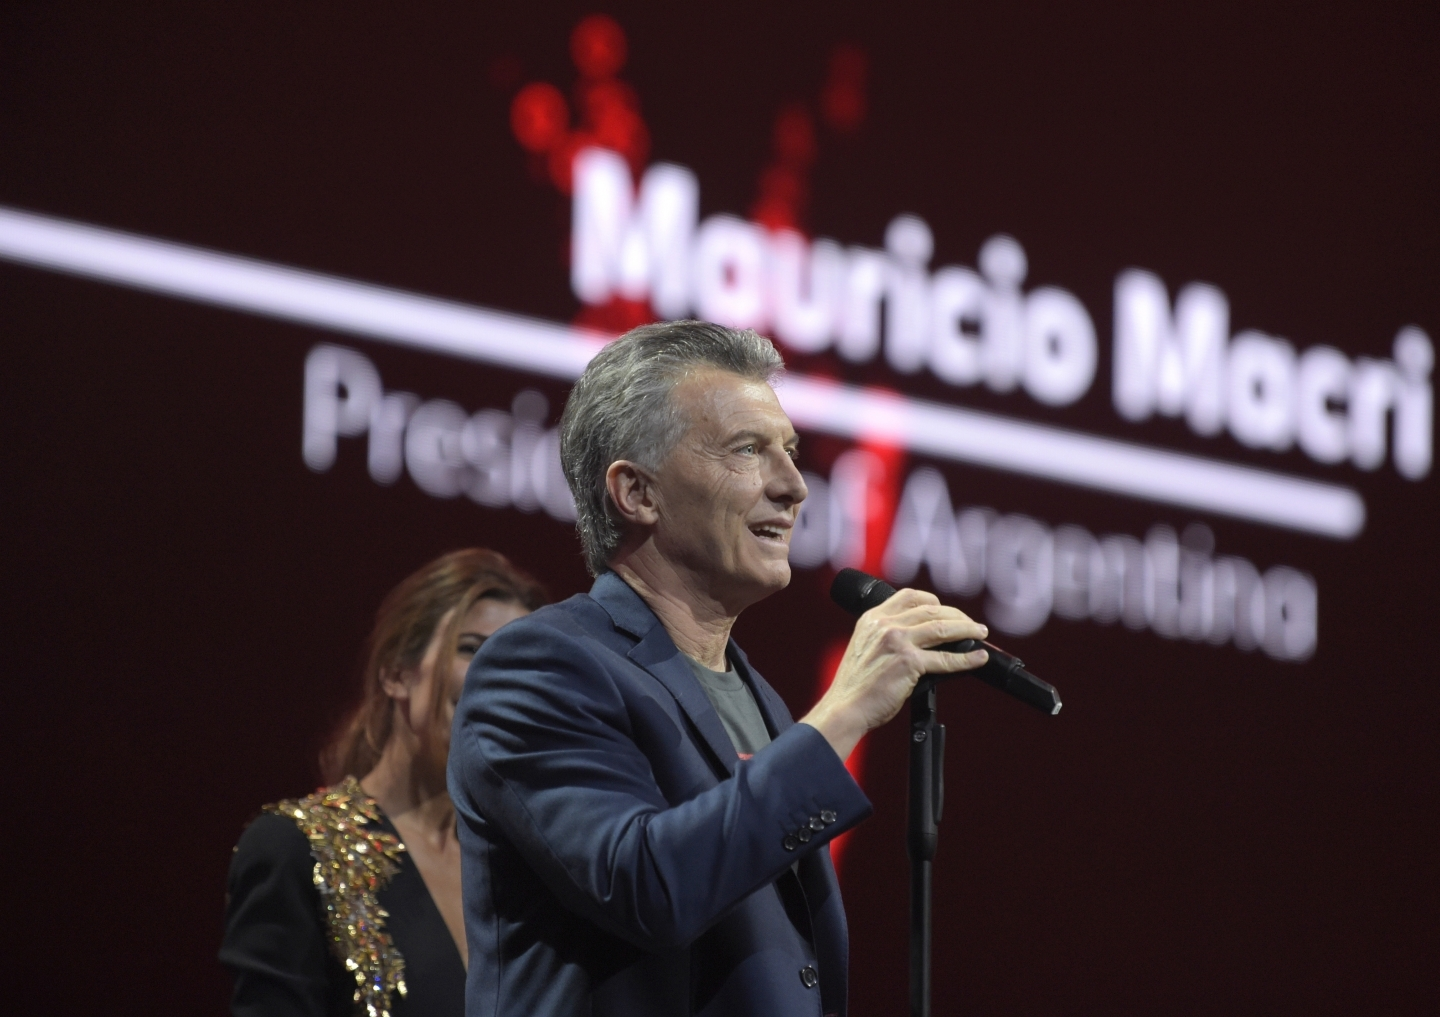 Argentinian President Mauricio Macri speaks during a concert at G20 summit (AP Photo/Jens Meyer)